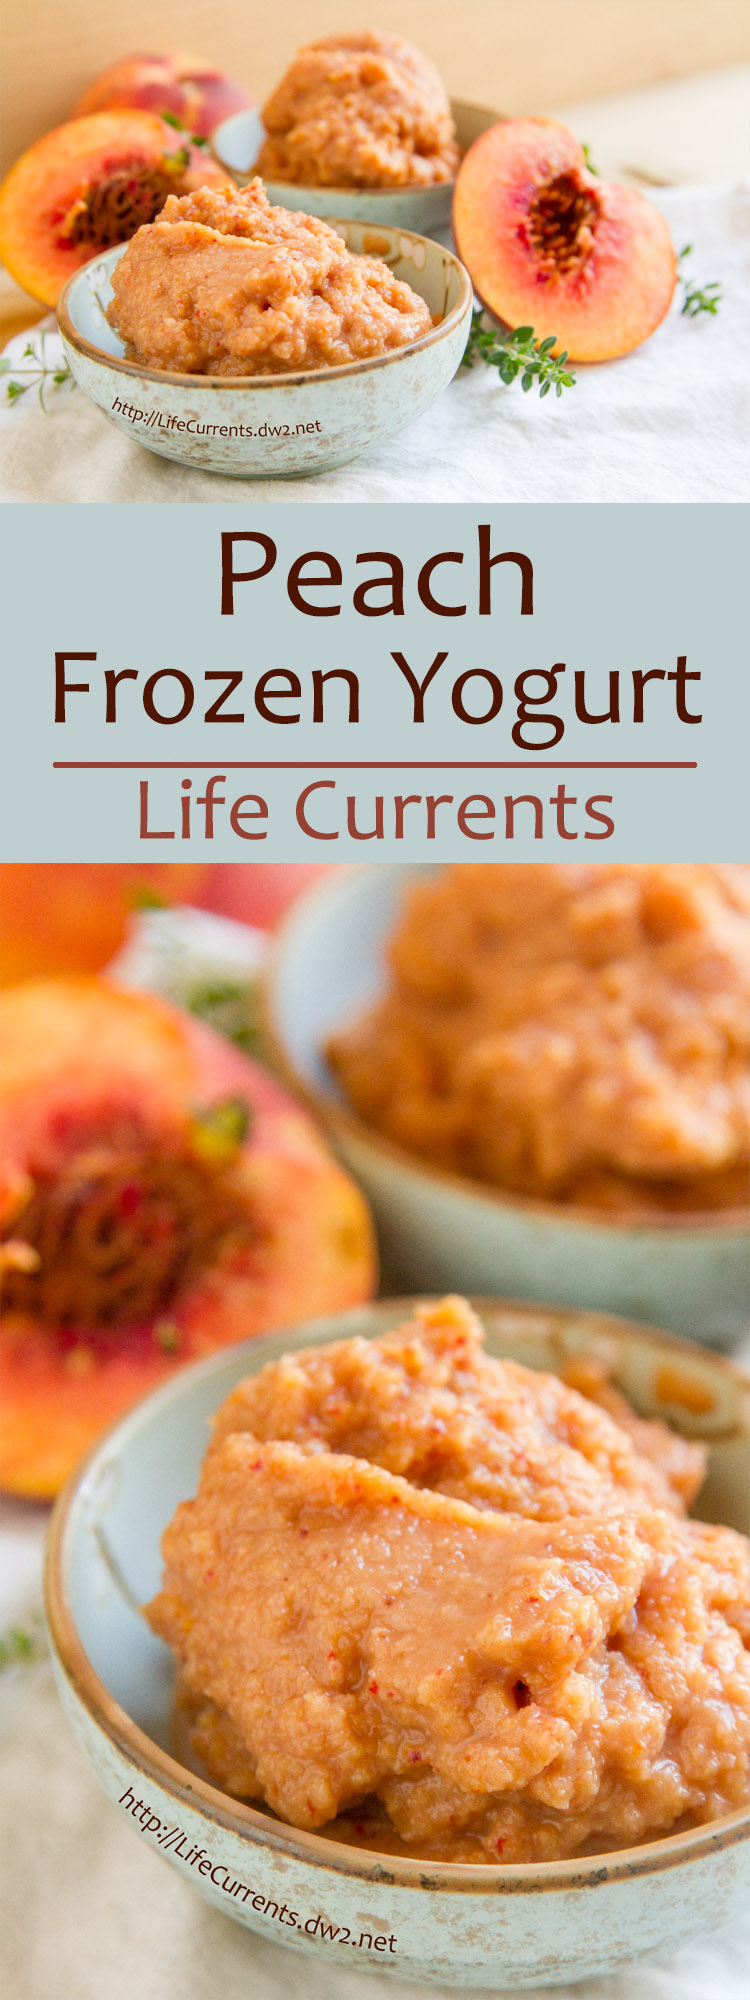 When you turn those beautiful sweet summer peaches into this fabulous treat, everyone (including the kids!) will want some! Try my Peach Frozen Yogurt for breakfast or dessert!